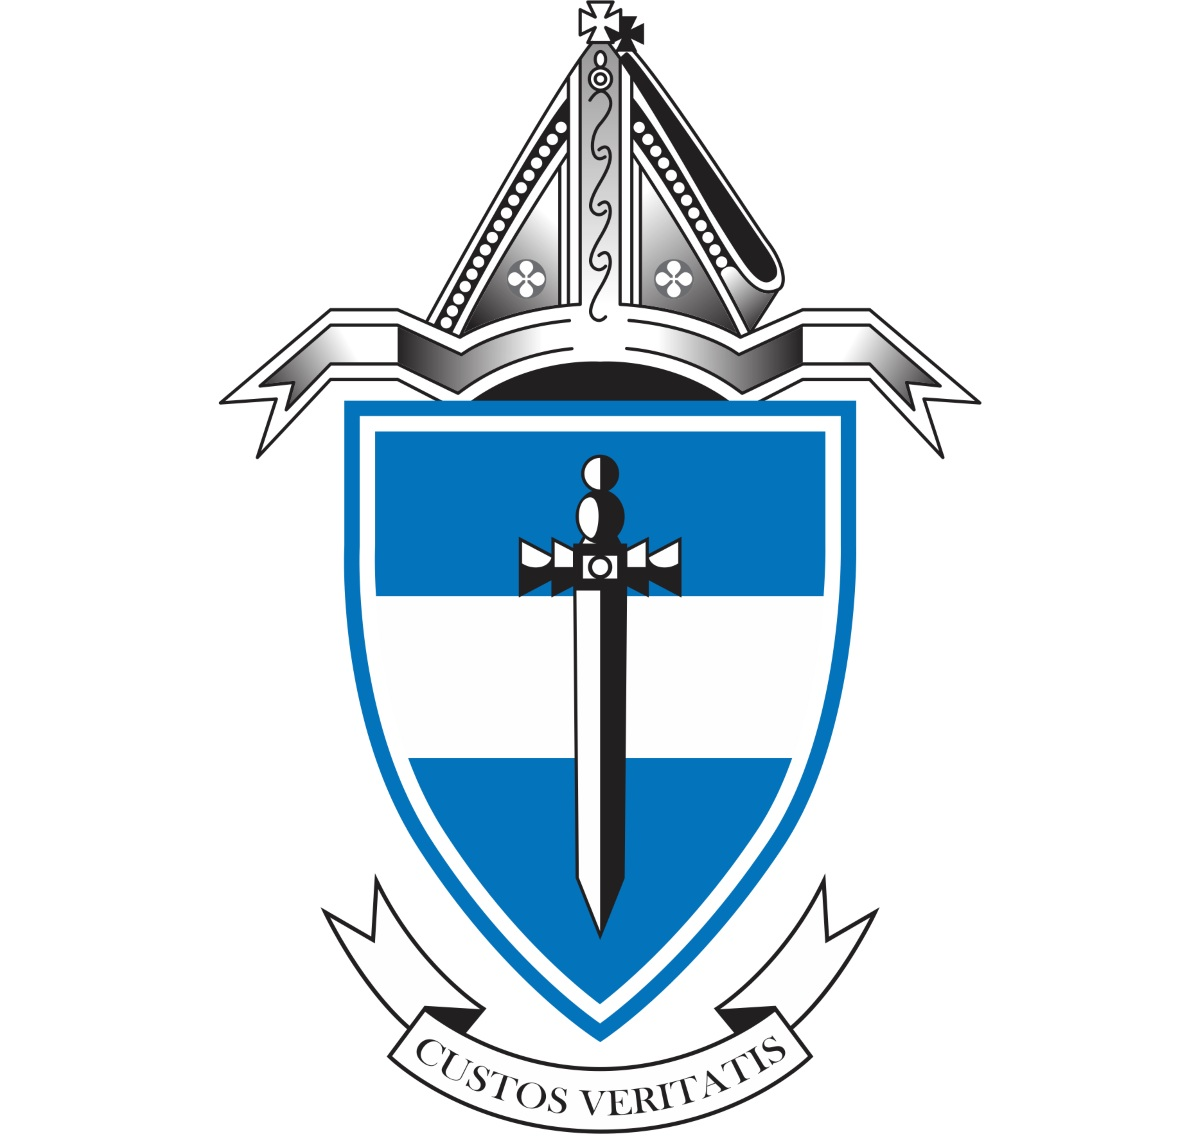 St Alban's College